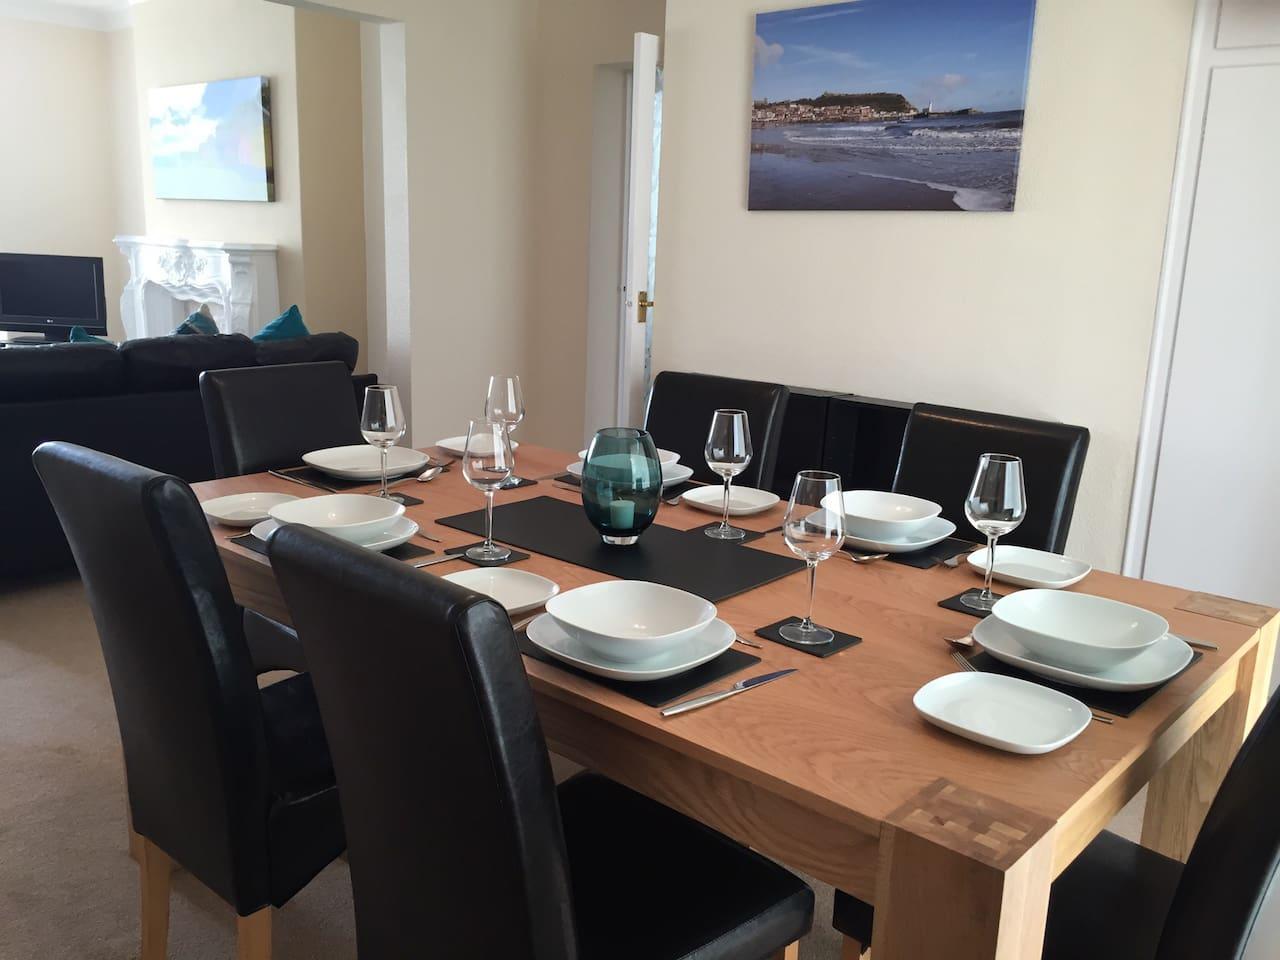 Dining for up to 6 people